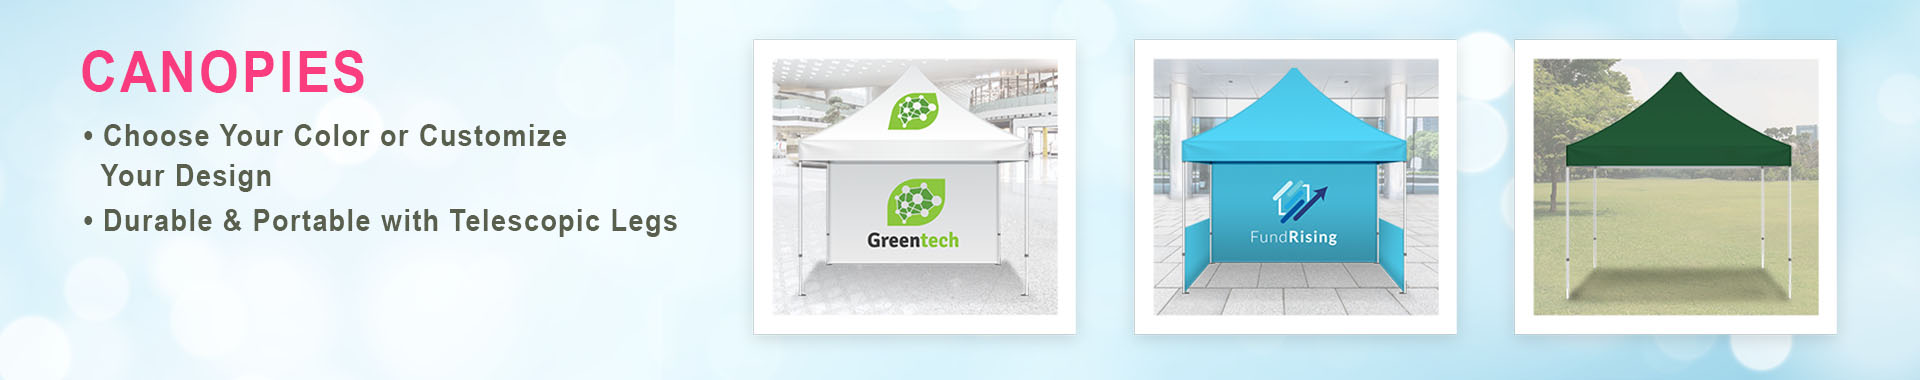 Category Canopies Banner